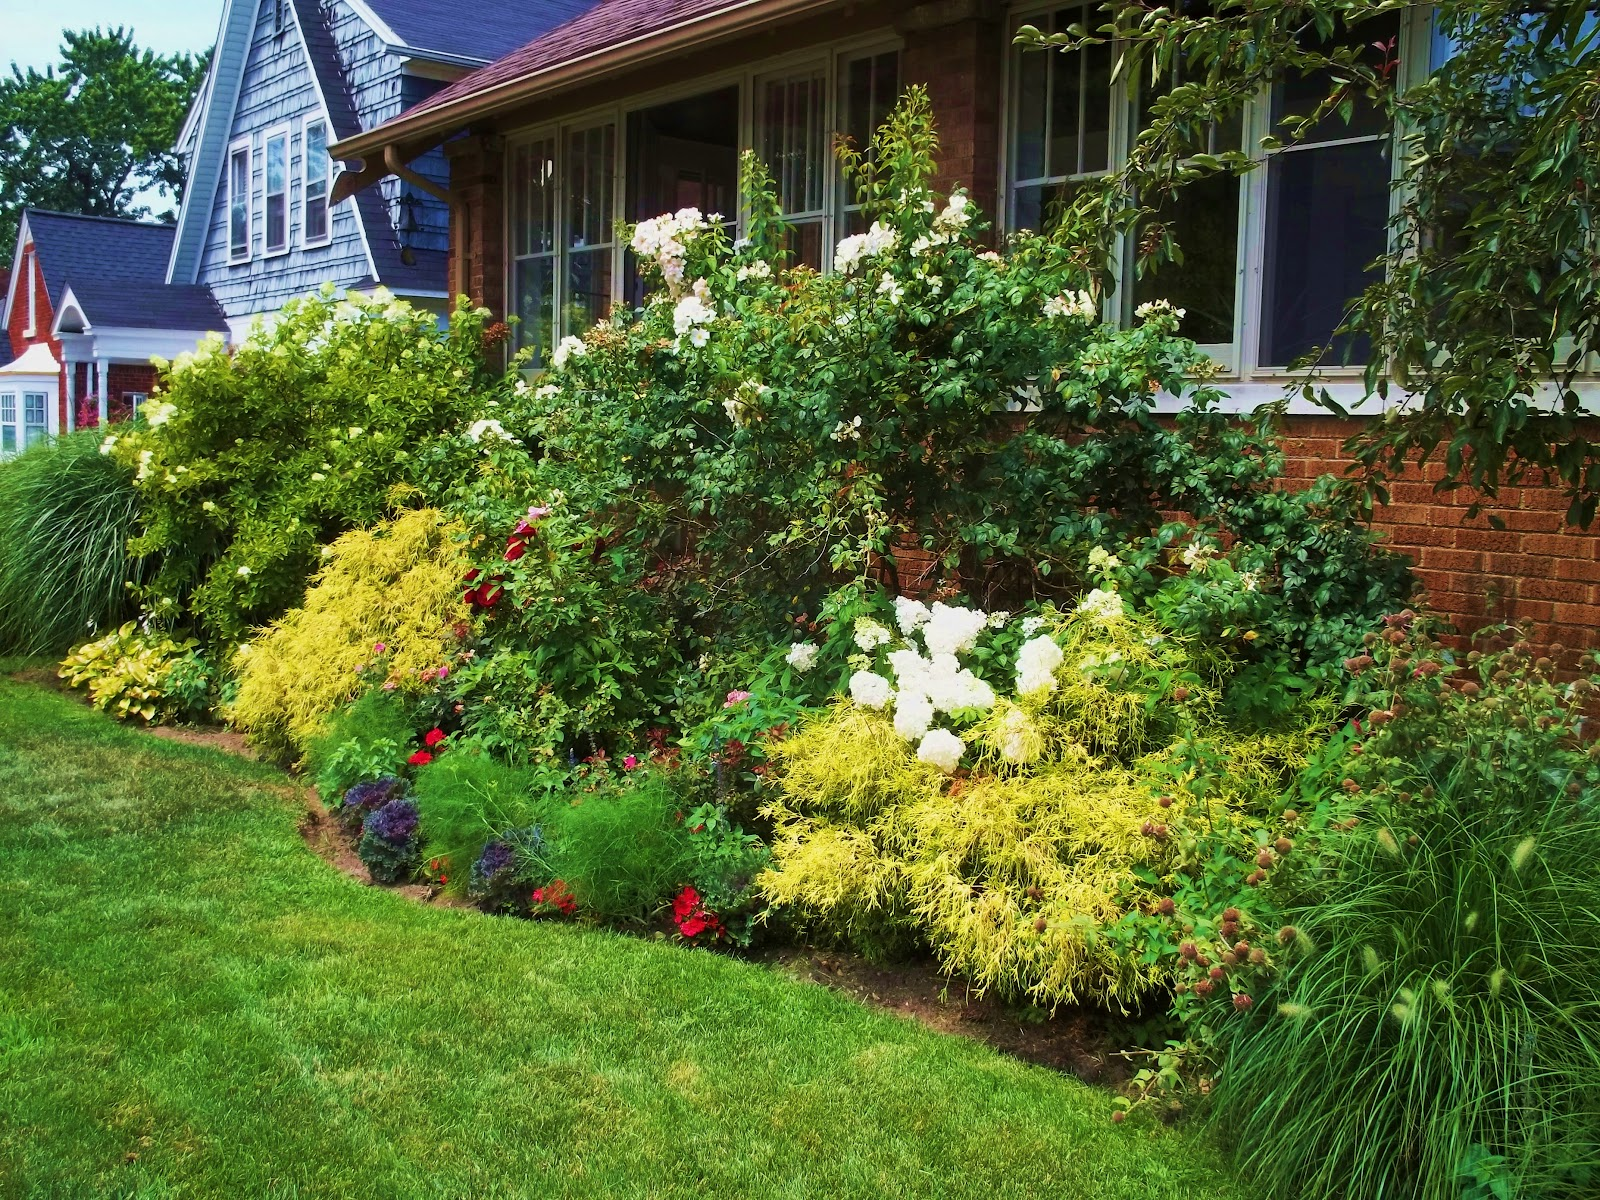 Digging In The Dirt: A cottage style garden on Bungalow Backyard Ideas id=21341